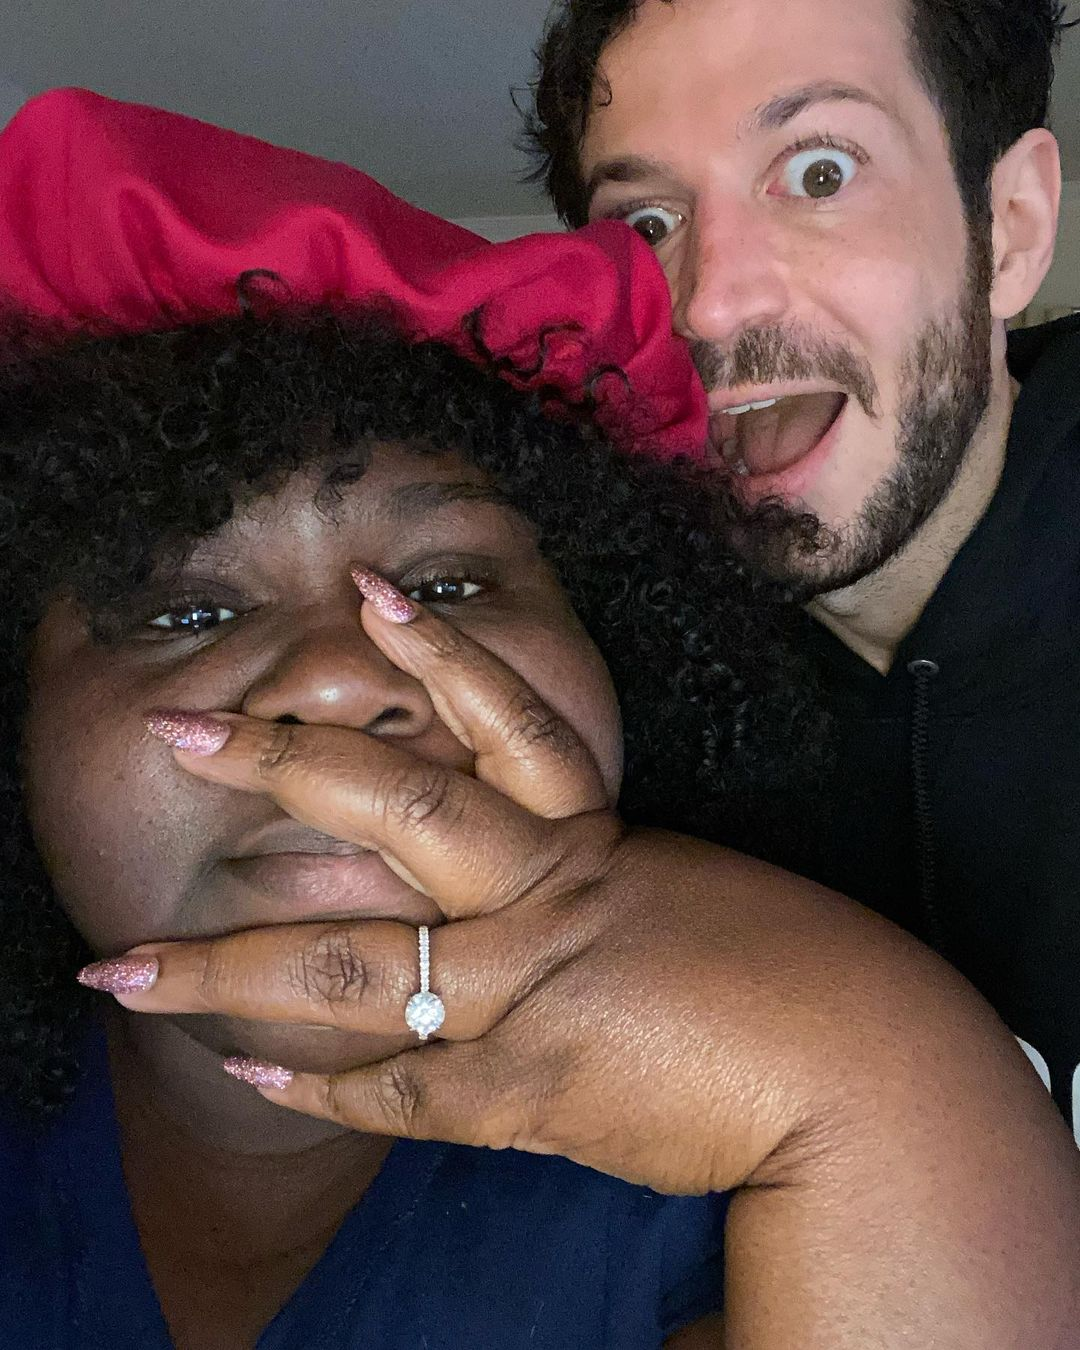 Gabourey Sidibe and Brandon Frankel posing with engagement ring after marriage proposal